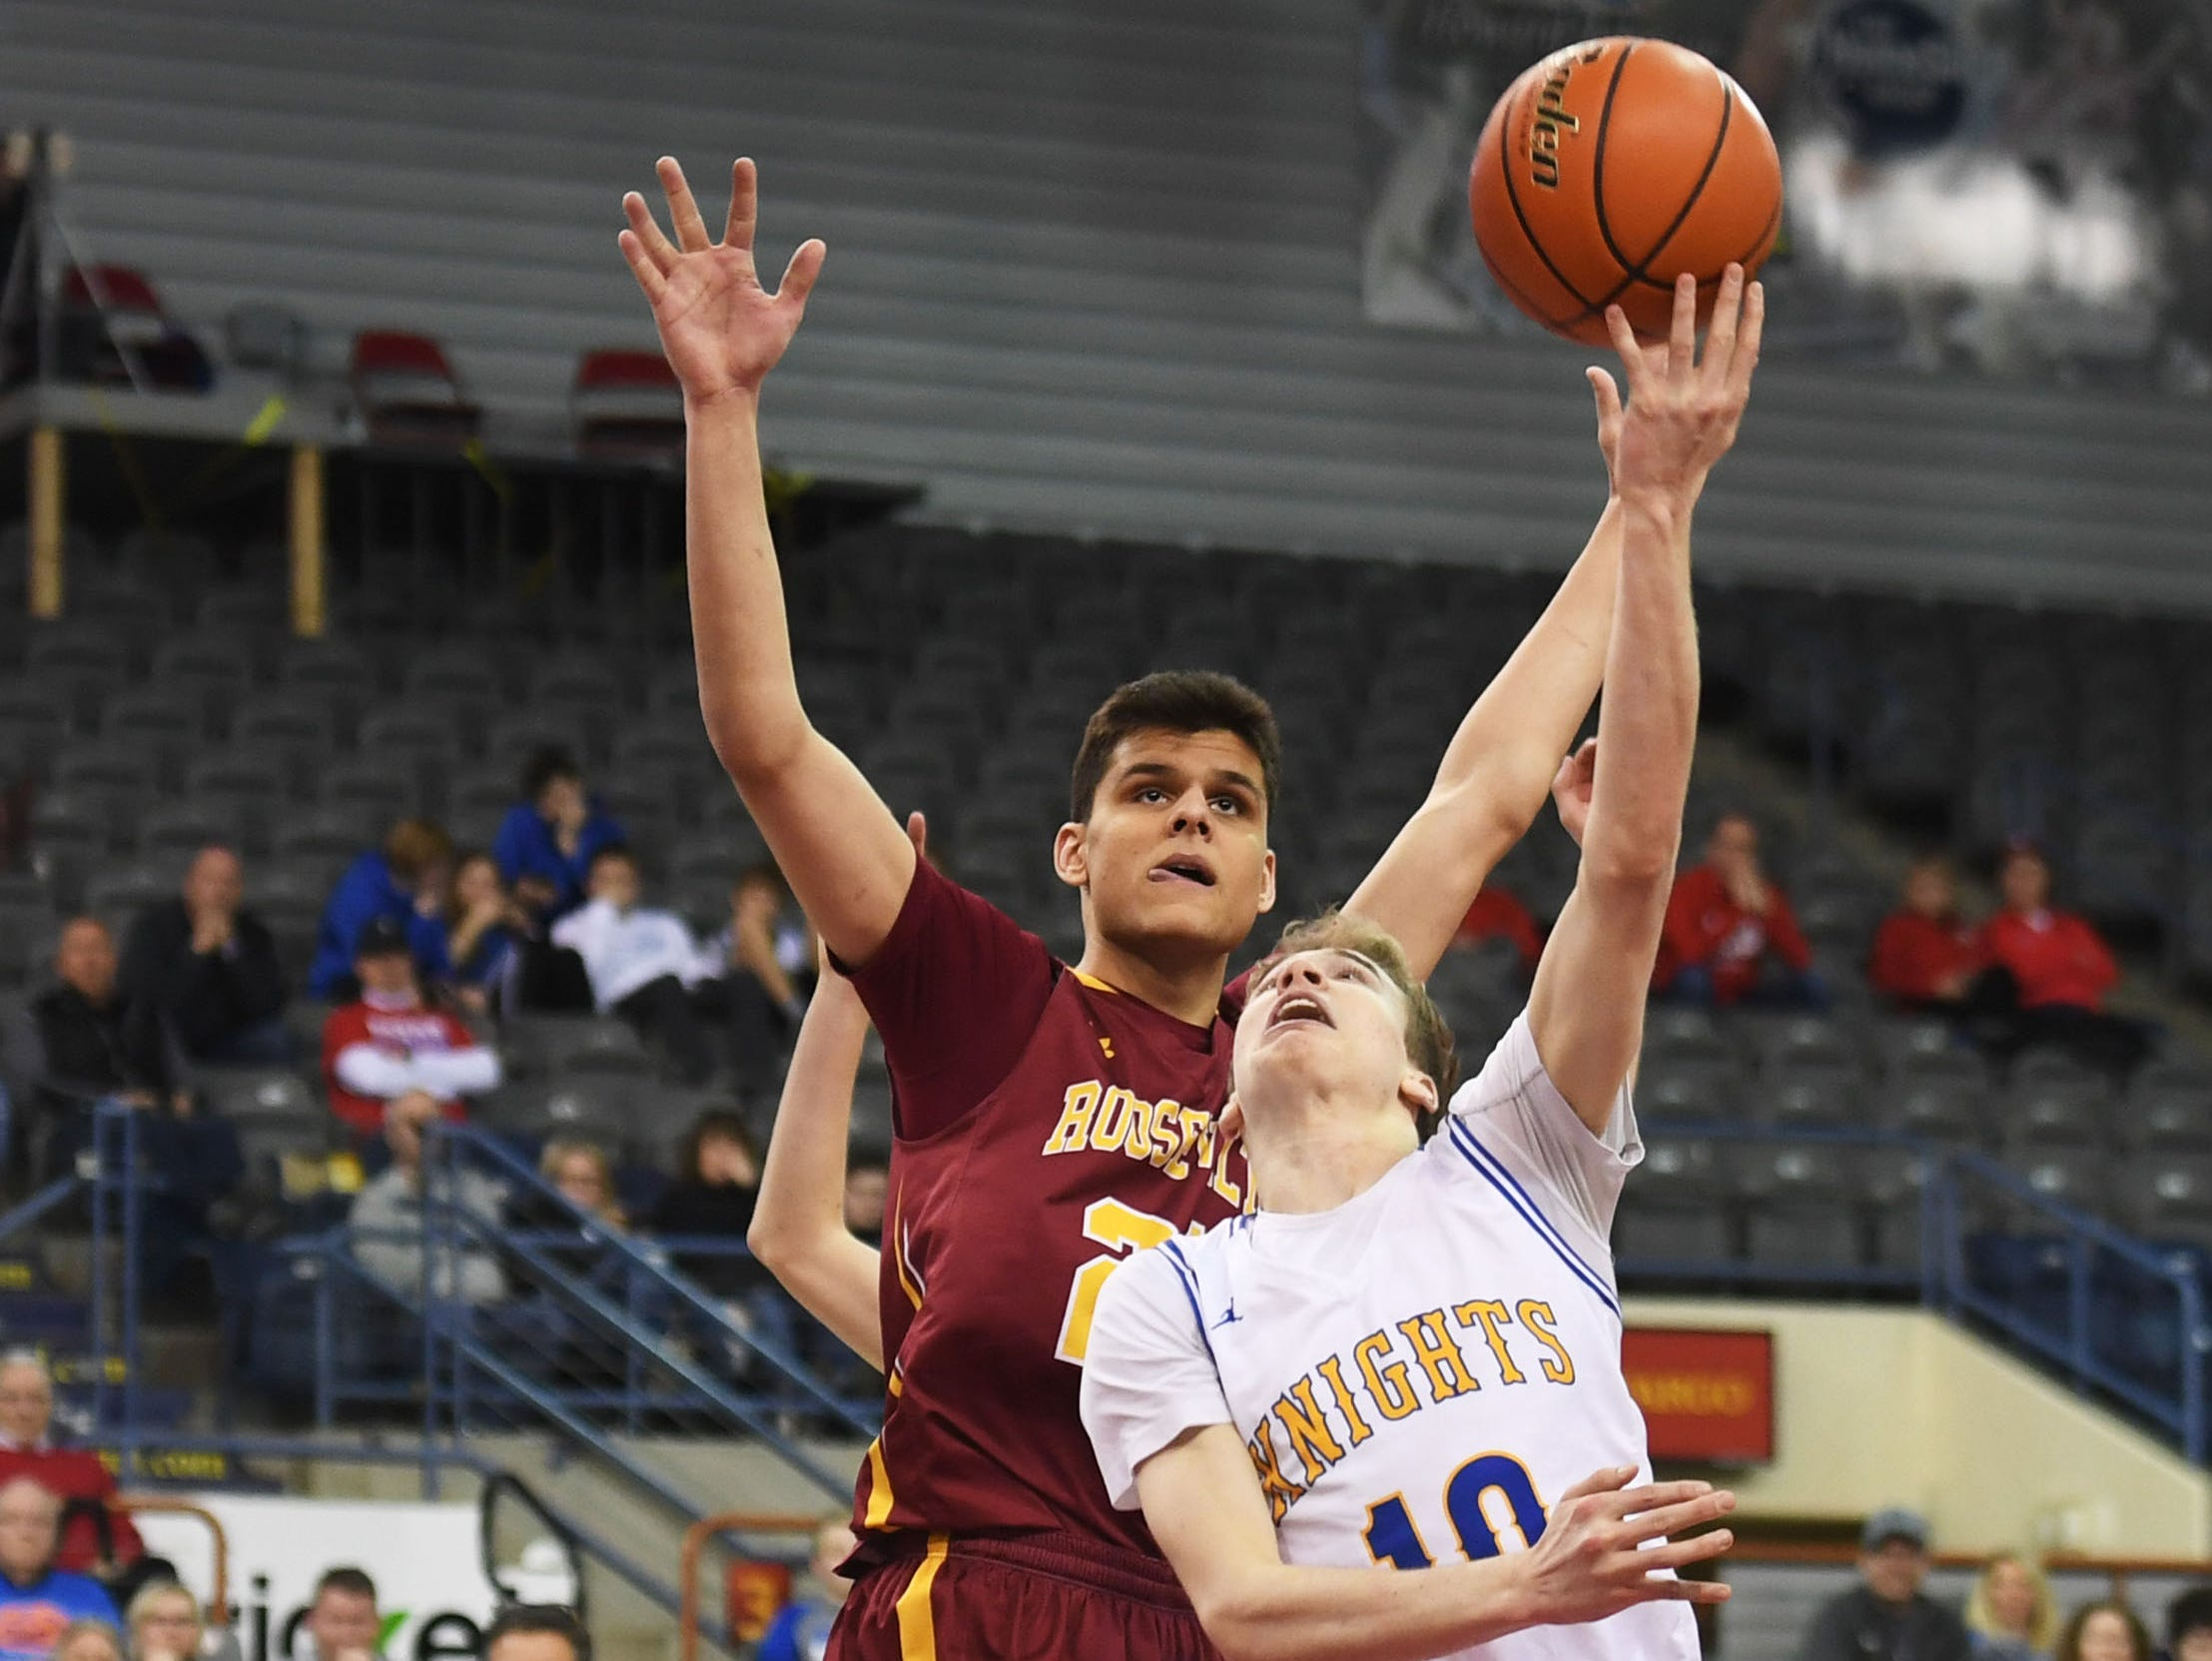 O'Gorman's Jack Cartwright takes a shot during the game against Roosevelt in the Class AA quarterfinals Thursday, March 14, in Rapid City.